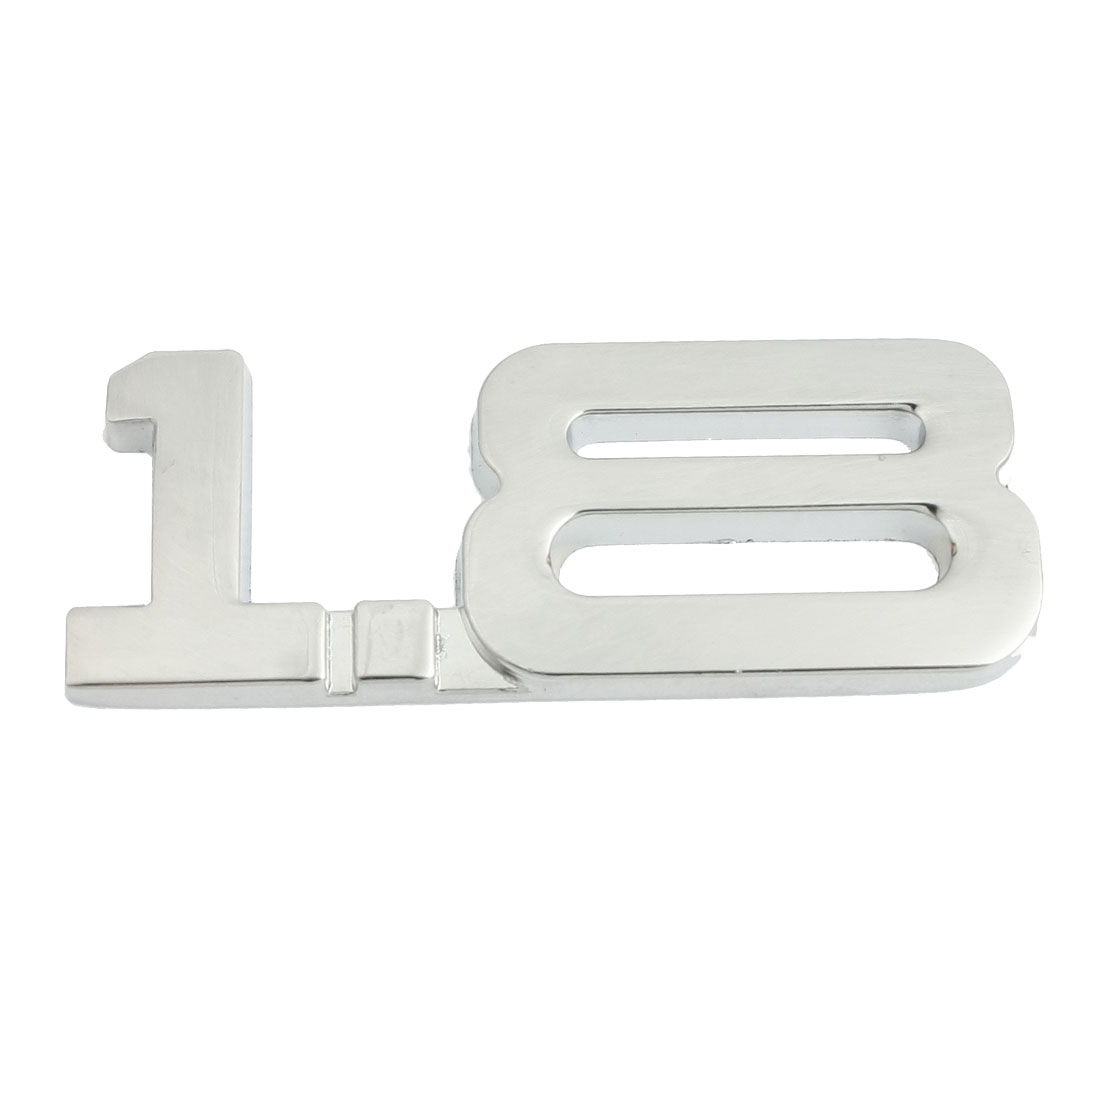 Car Truck Alloy 1.8 Decal Emblem 3D Badge Sticker Decor Silver Tone